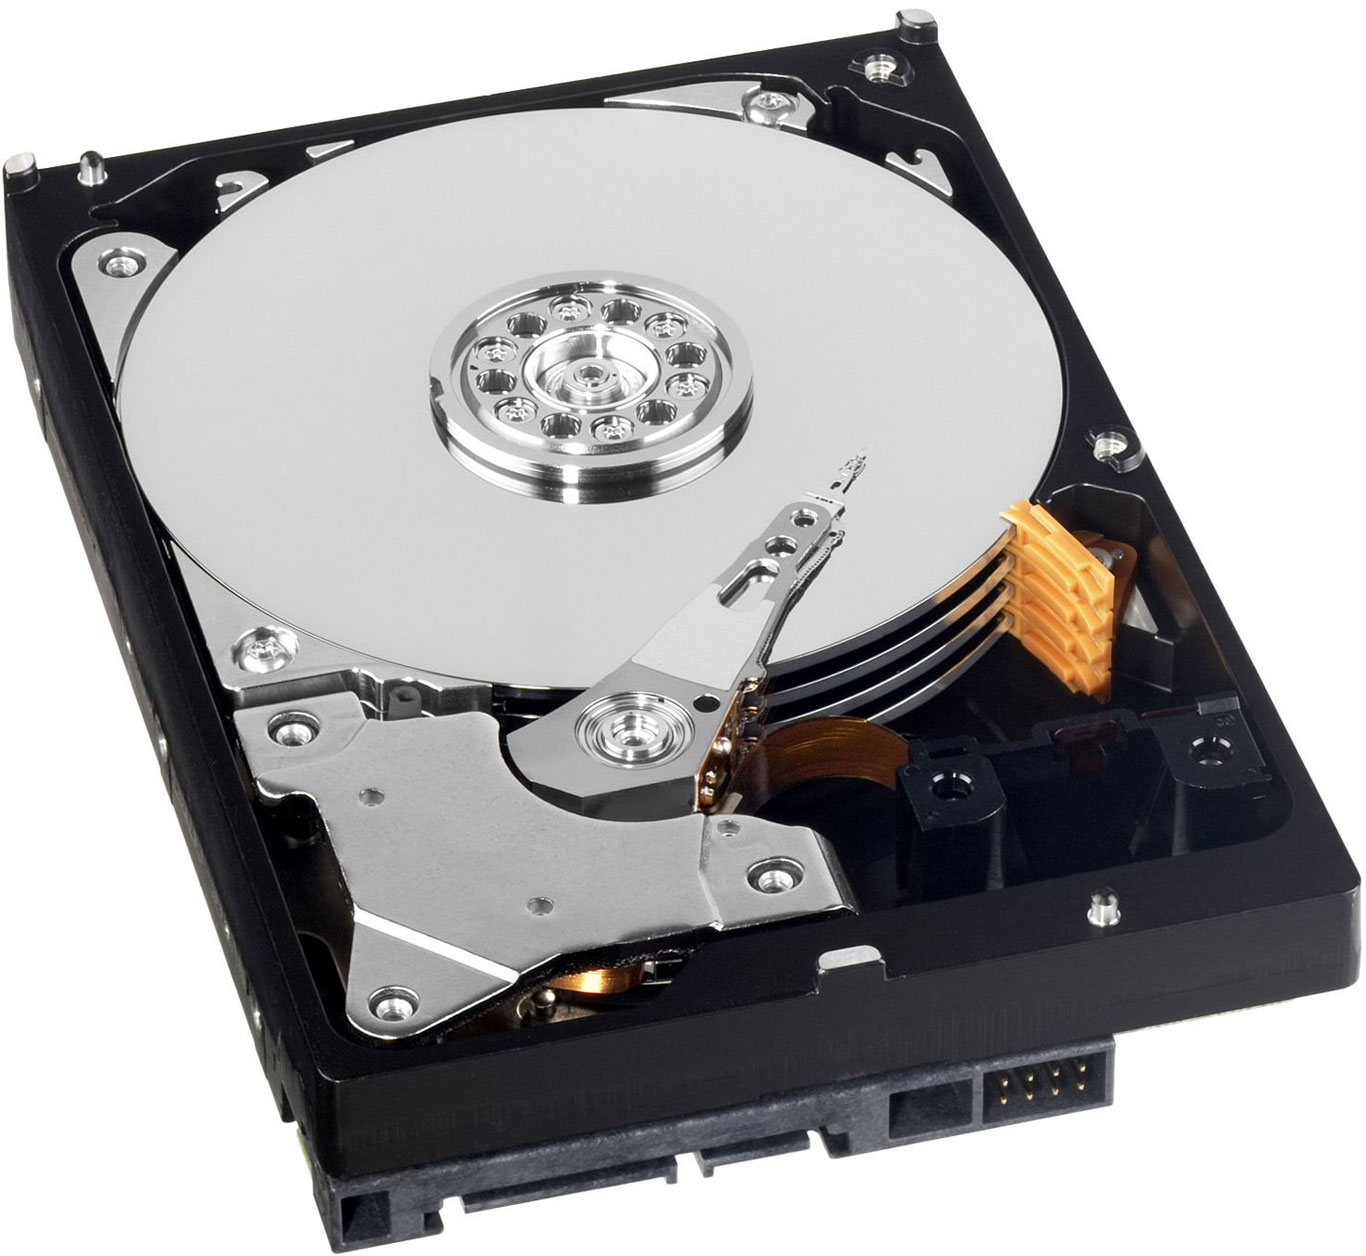 PC Sata 1.5TB HDD